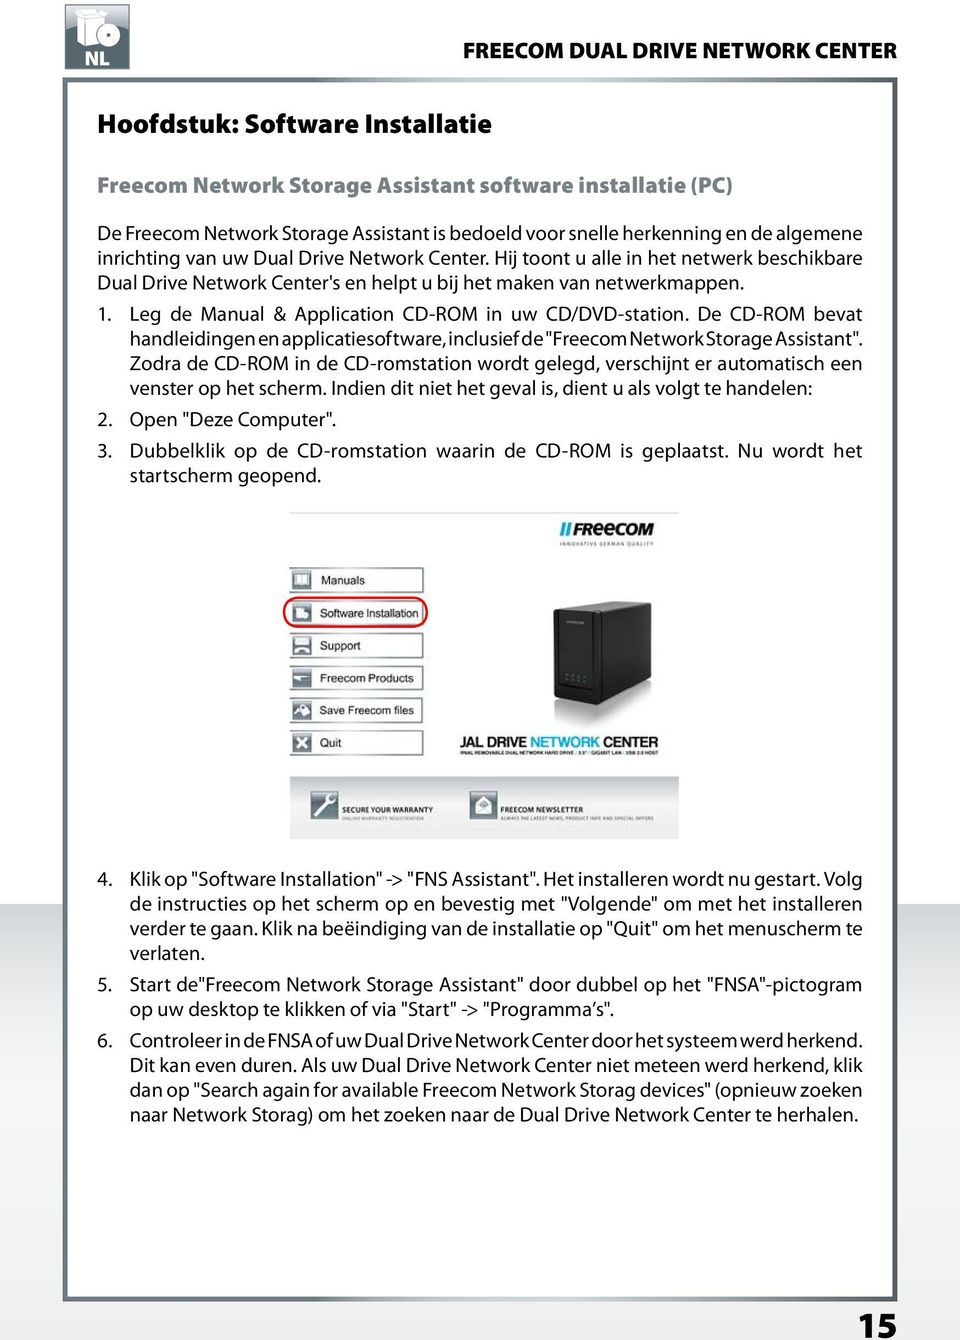 "Leg de Manual & Application CD-ROM in uw CD/DVD-station. De CD-ROM bevat handleidingen en applicatiesoftware, inclusief de ""Freecom Network Storage Assistant""."